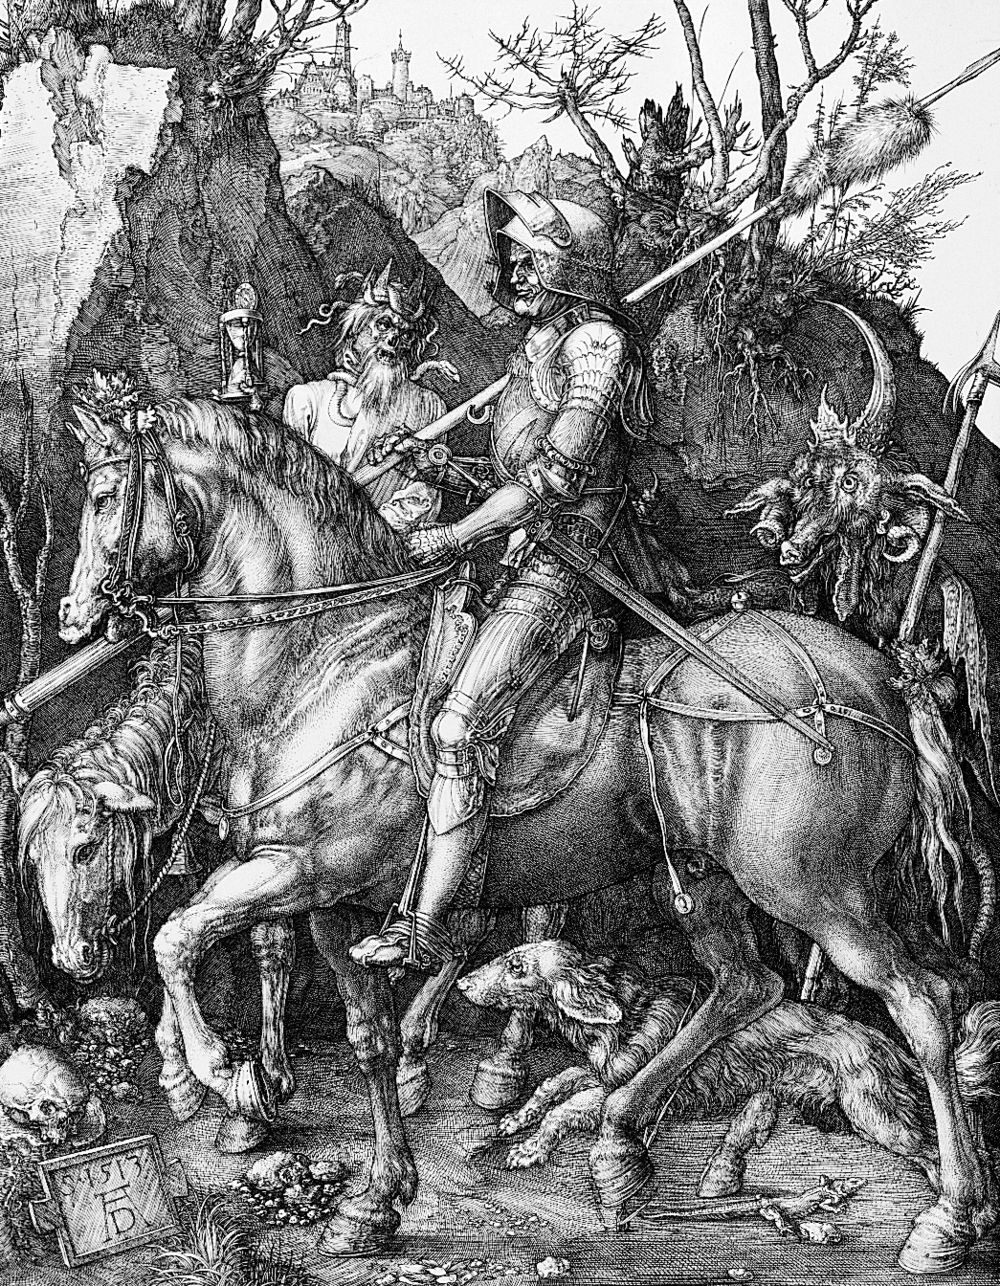 Ritter, Tod und Teufel (Knight, Death, and the Devil) Dürer